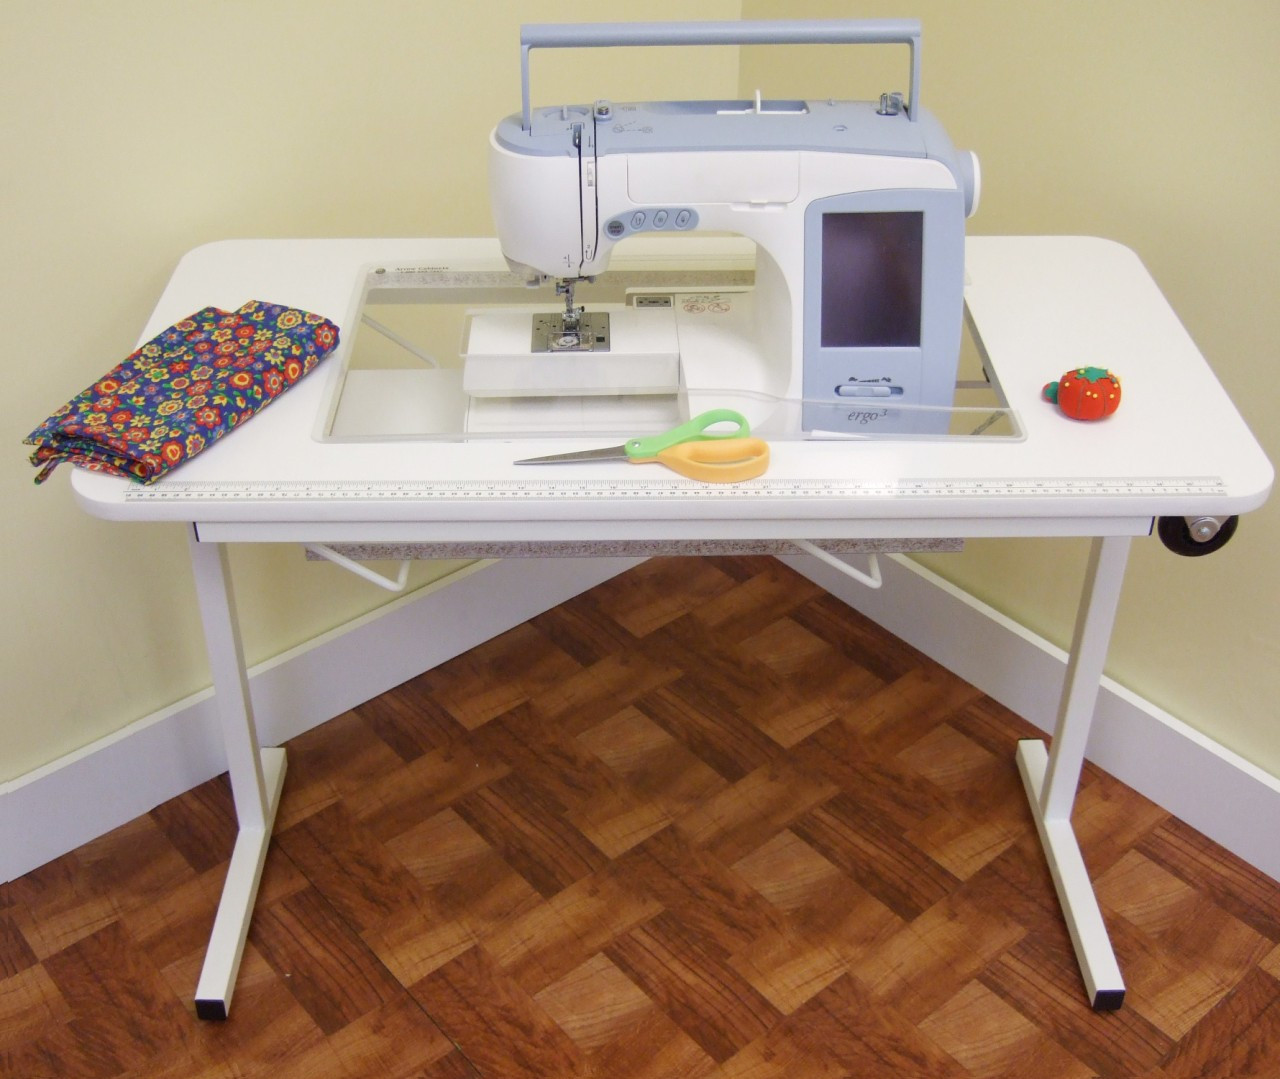 Arrow 98611 Gidget 2 White Sewing Machine Table With Wheels. Cabinet Drawer Front Replacement. Snooker Table For Sale. Desk With X Legs. Solar Desk Toys. West Elm Secretary Desk. Small Round Table. Standing Desk Monitor Riser. Left L Shaped Desk